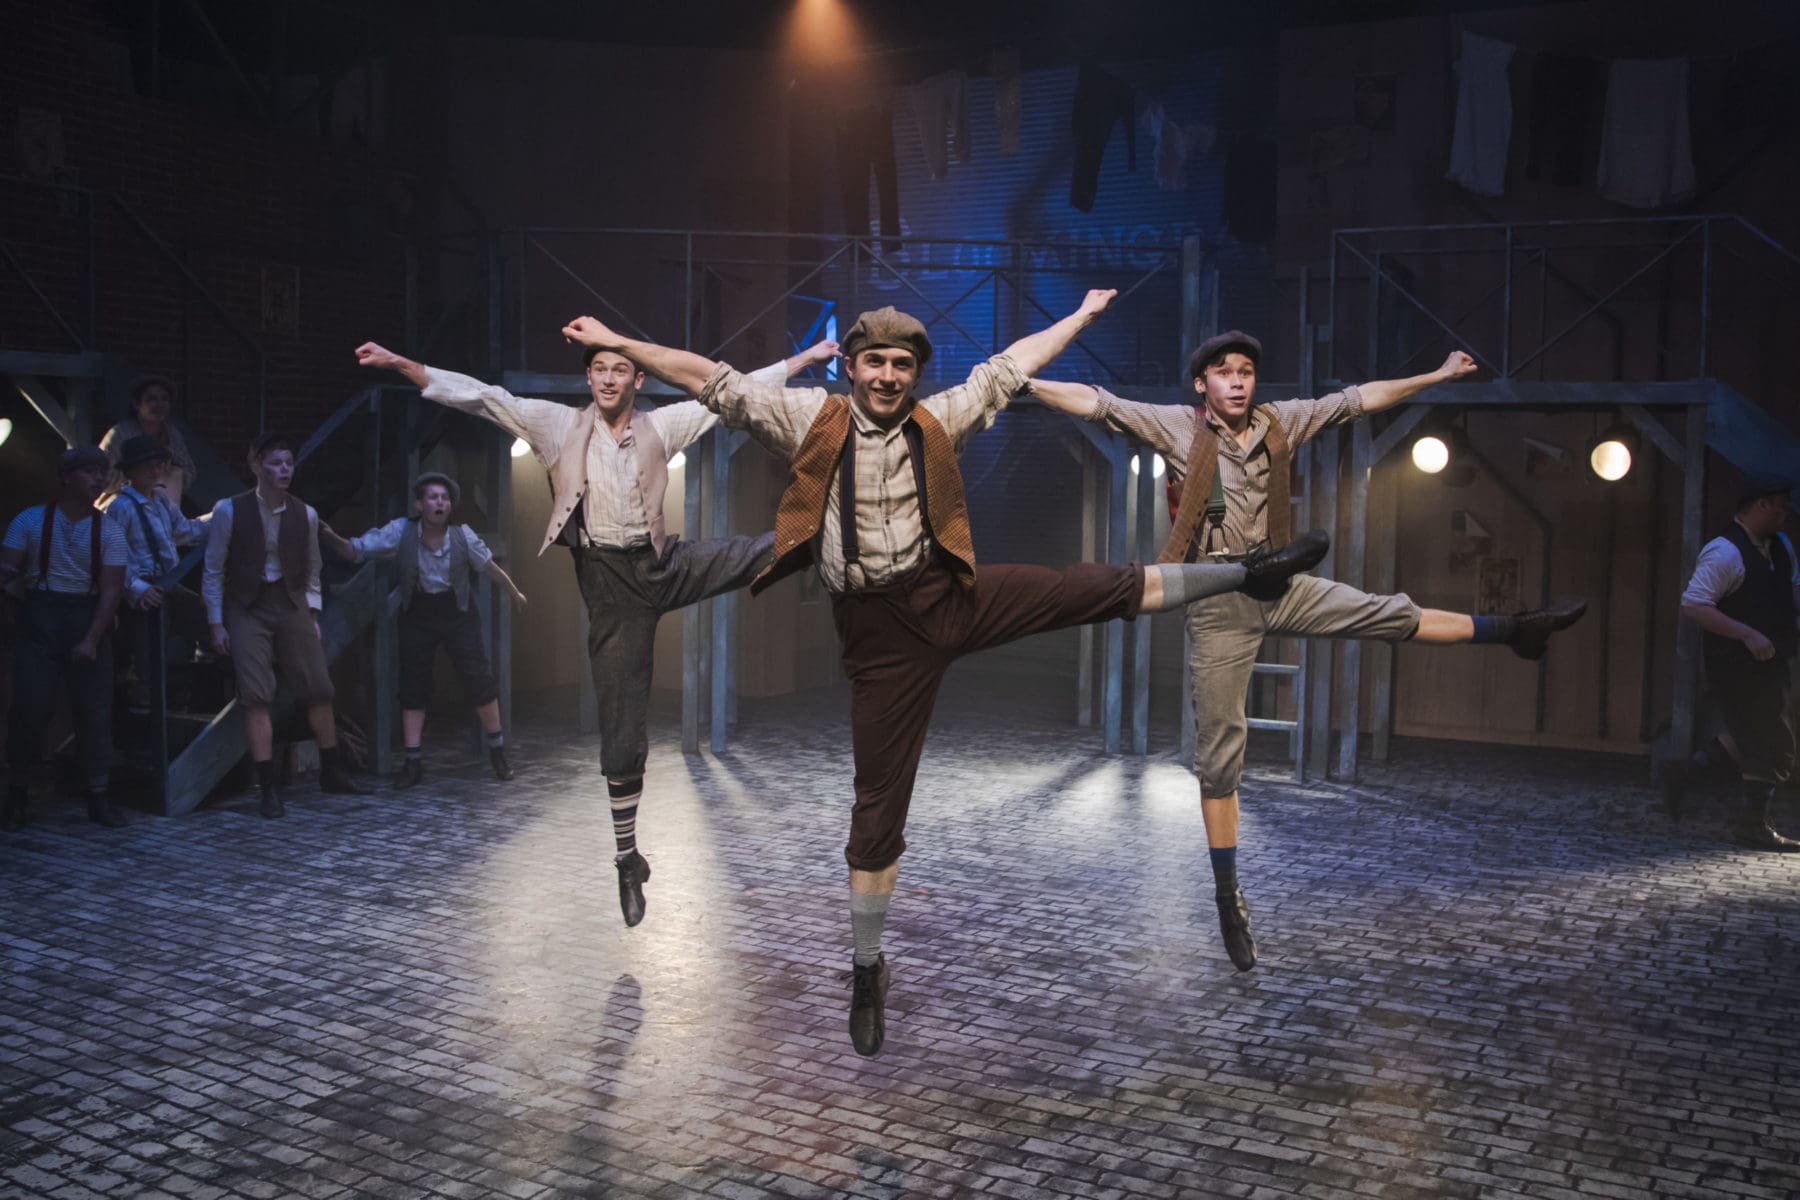 """(L  to R) Zachary Isen as Albert, Tony Wooldridge as Romeo, and Ethan Dea as Race, light up the stage with iconic dance in """"Newsies"""" at Hillbarn Theatre."""